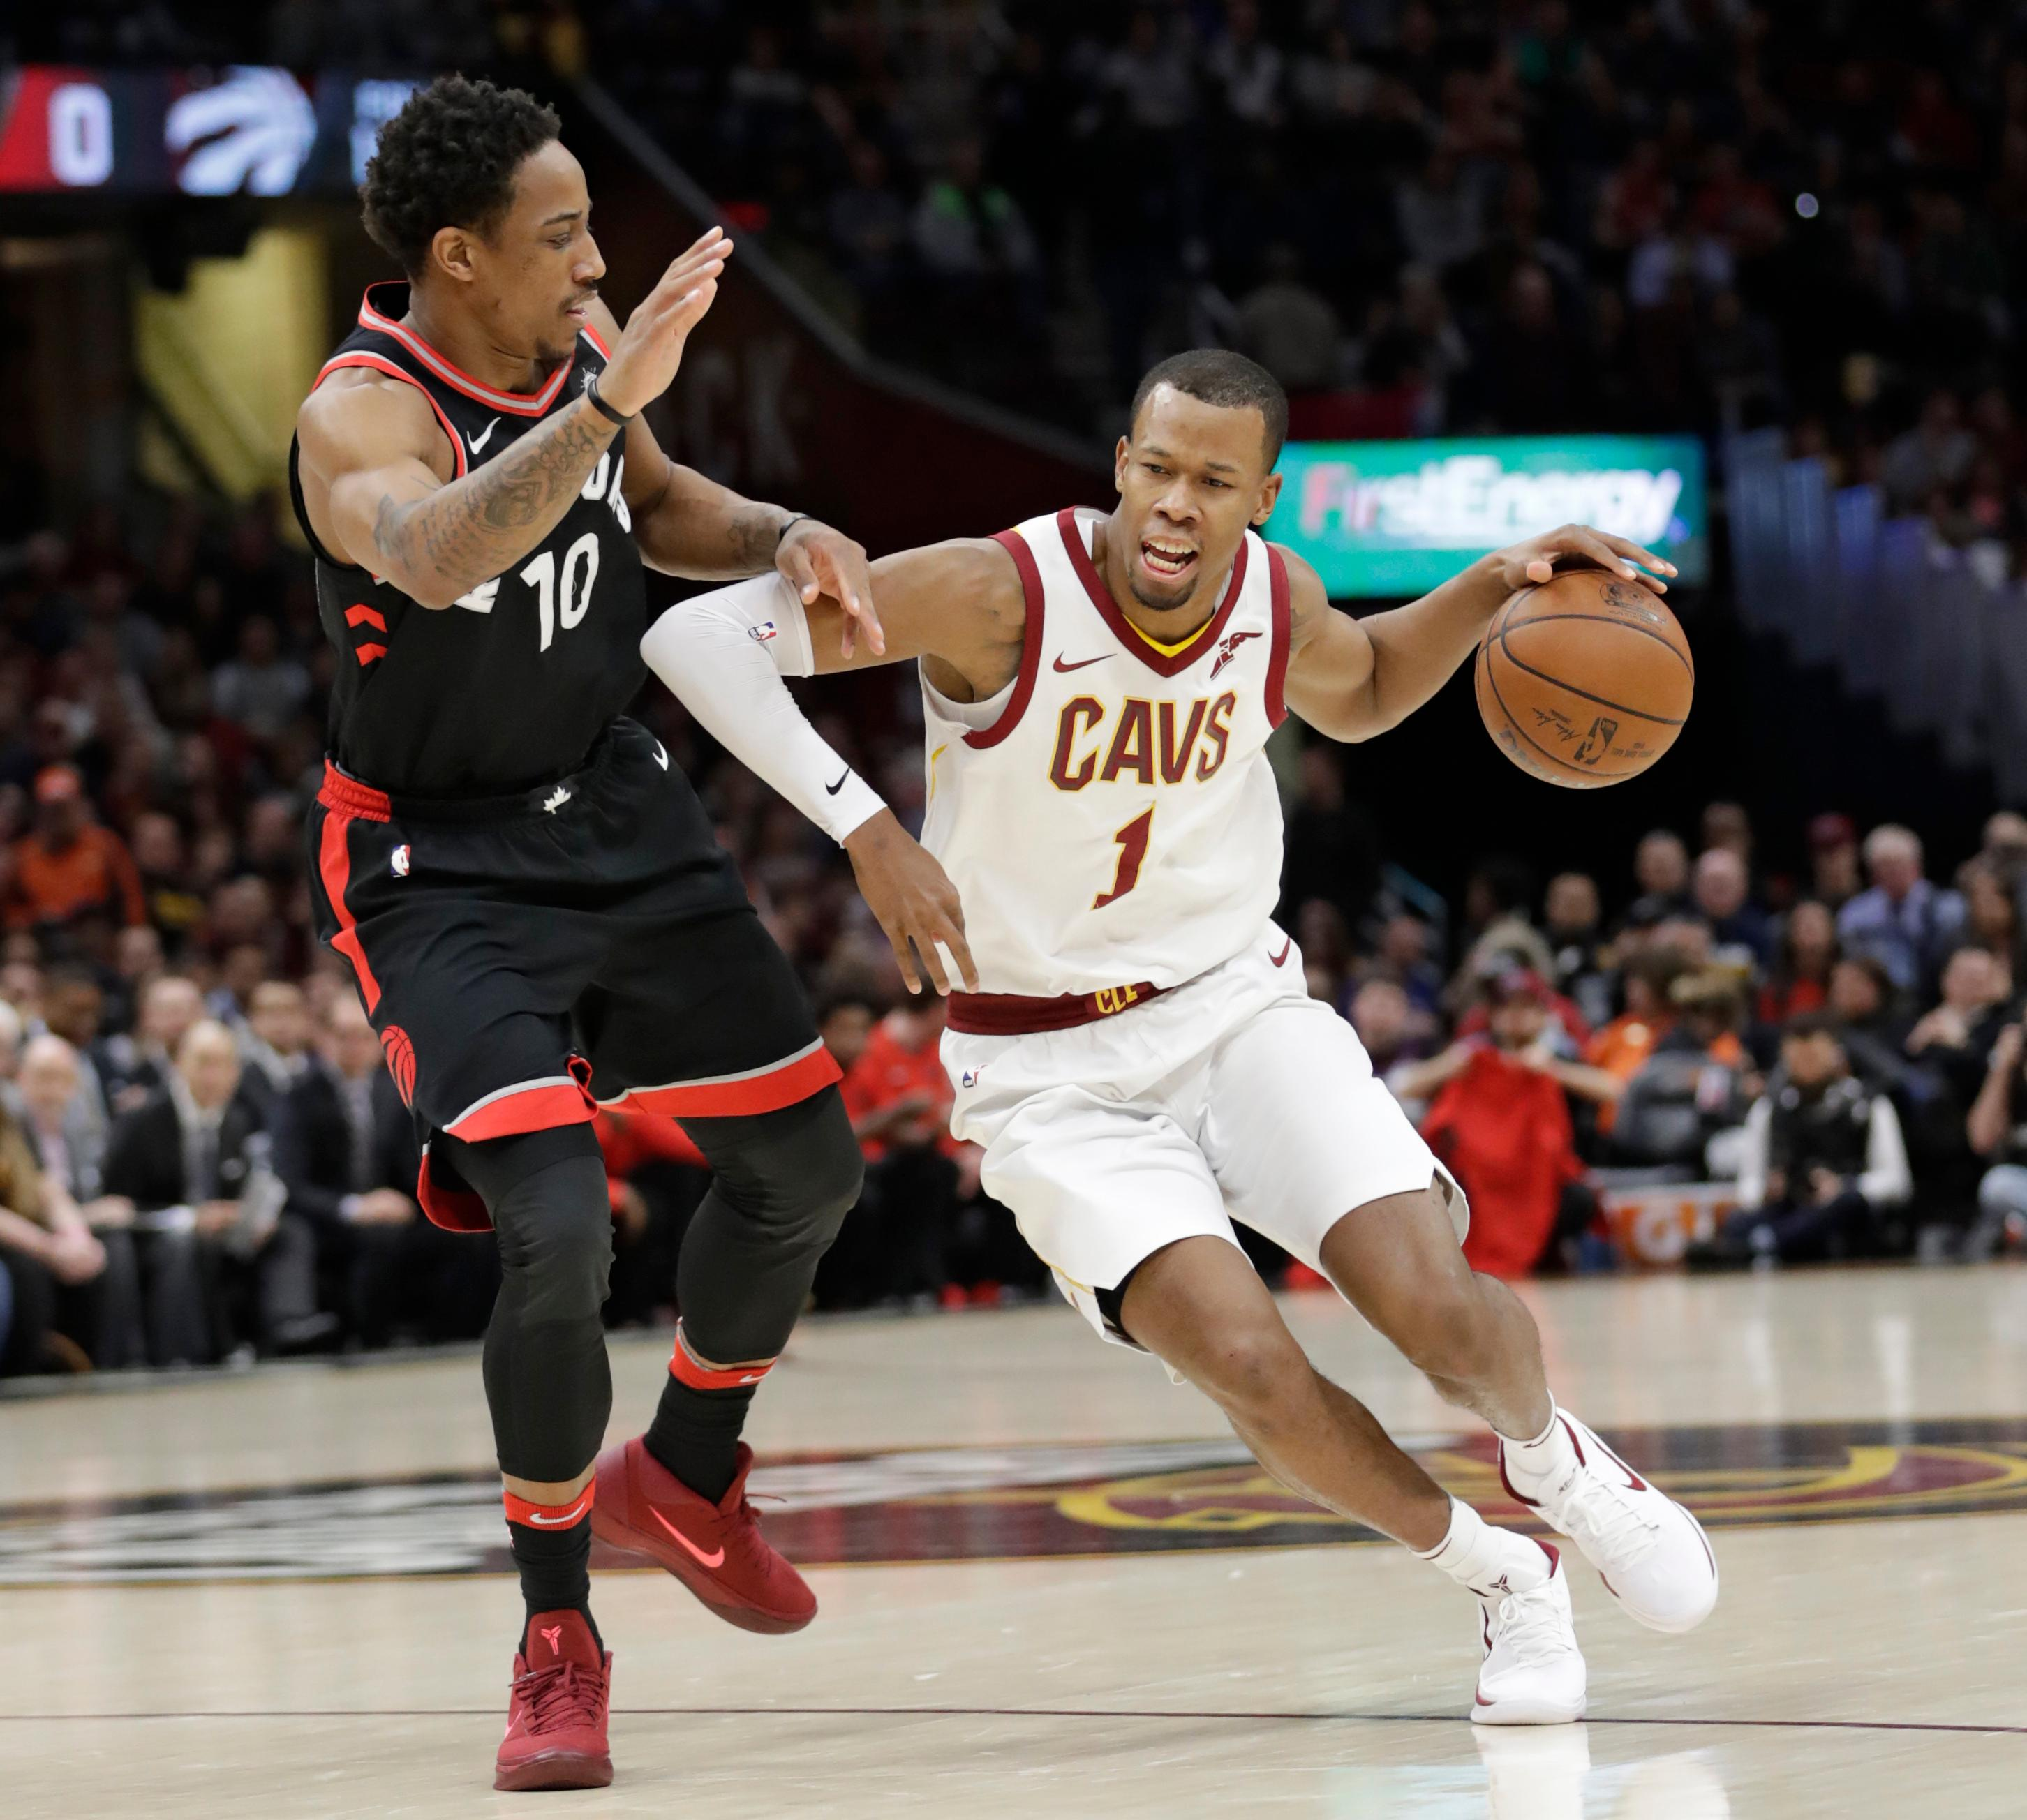 FILE - In this April 3, 2018, file photo, Cleveland Cavaliers' Rodney Hood (1) drives past Toronto Raptors' DeMar DeRozan (10) during the first half of an NBA basketball game in Cleveland. A person familiar with the situation says the Cavaliers will not fine or suspend forward Rodney Hood for refusing to enter Game 4 against Toronto. The Athletic reported that Hood angered his teammates and others in the organization when he declined coach Tyronn Lue's request to replace LeBron James with 7:38 left and the Cavs leading by 30. Hood spoke to team officials about the incident Tuesday, May 8, 2018, and will not be disciplined, said the person who spoke to the Associated Press on condition of anonymity because of sensitivity.(AP Photo/Tony Dejak, File)